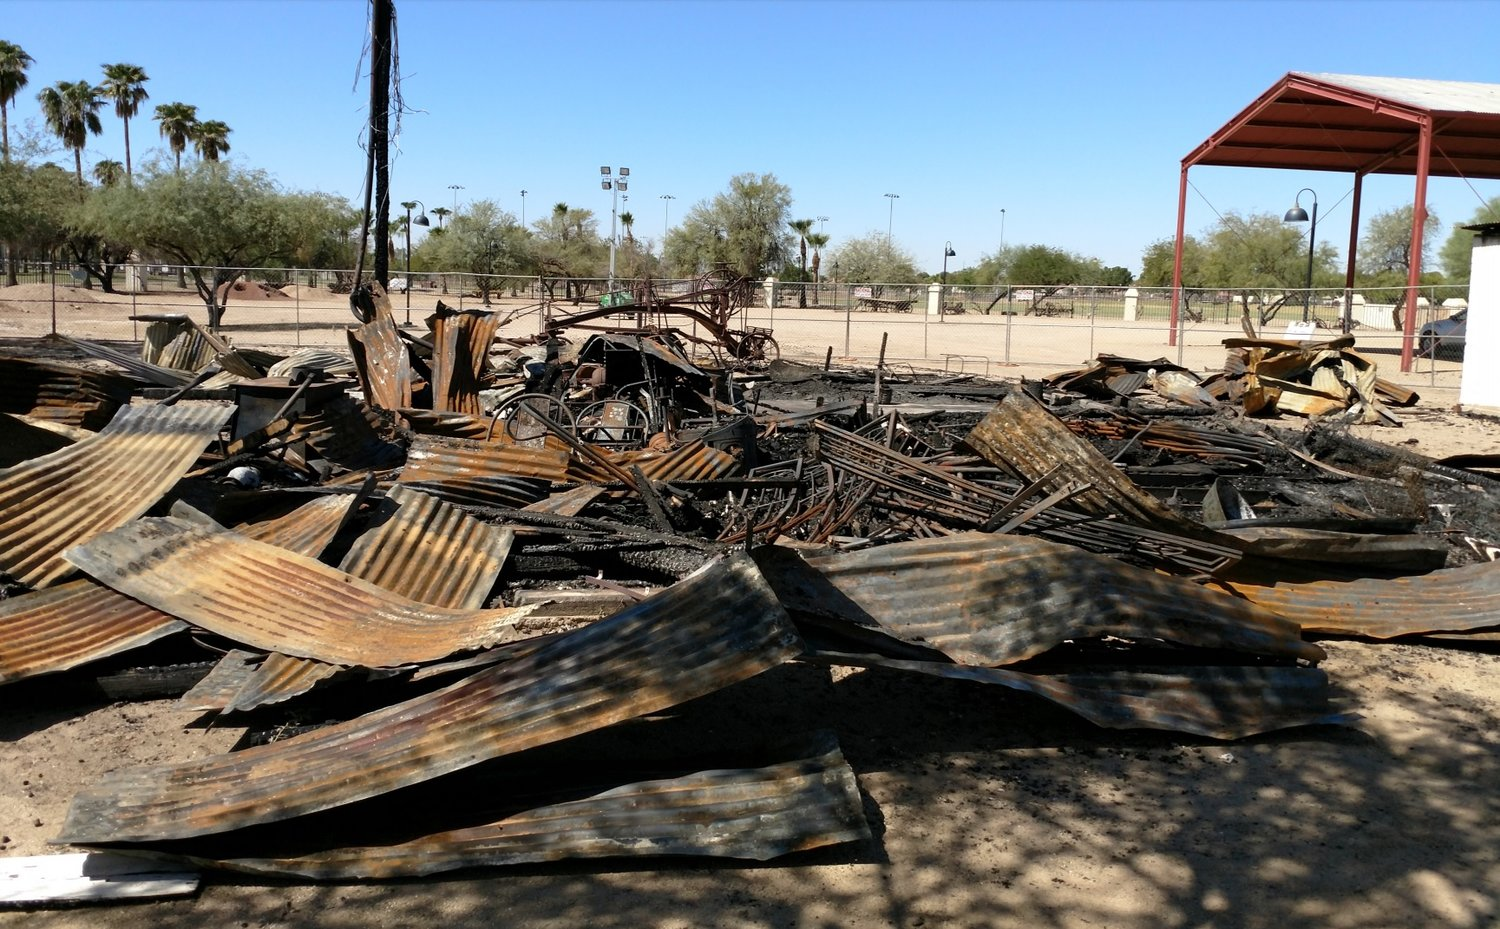 The stable/granary was one of several buildings at Glendale's Sahuaro Ranch Park destroyed in a fire in fall 2017. [Submitted photo/city of Glendale]